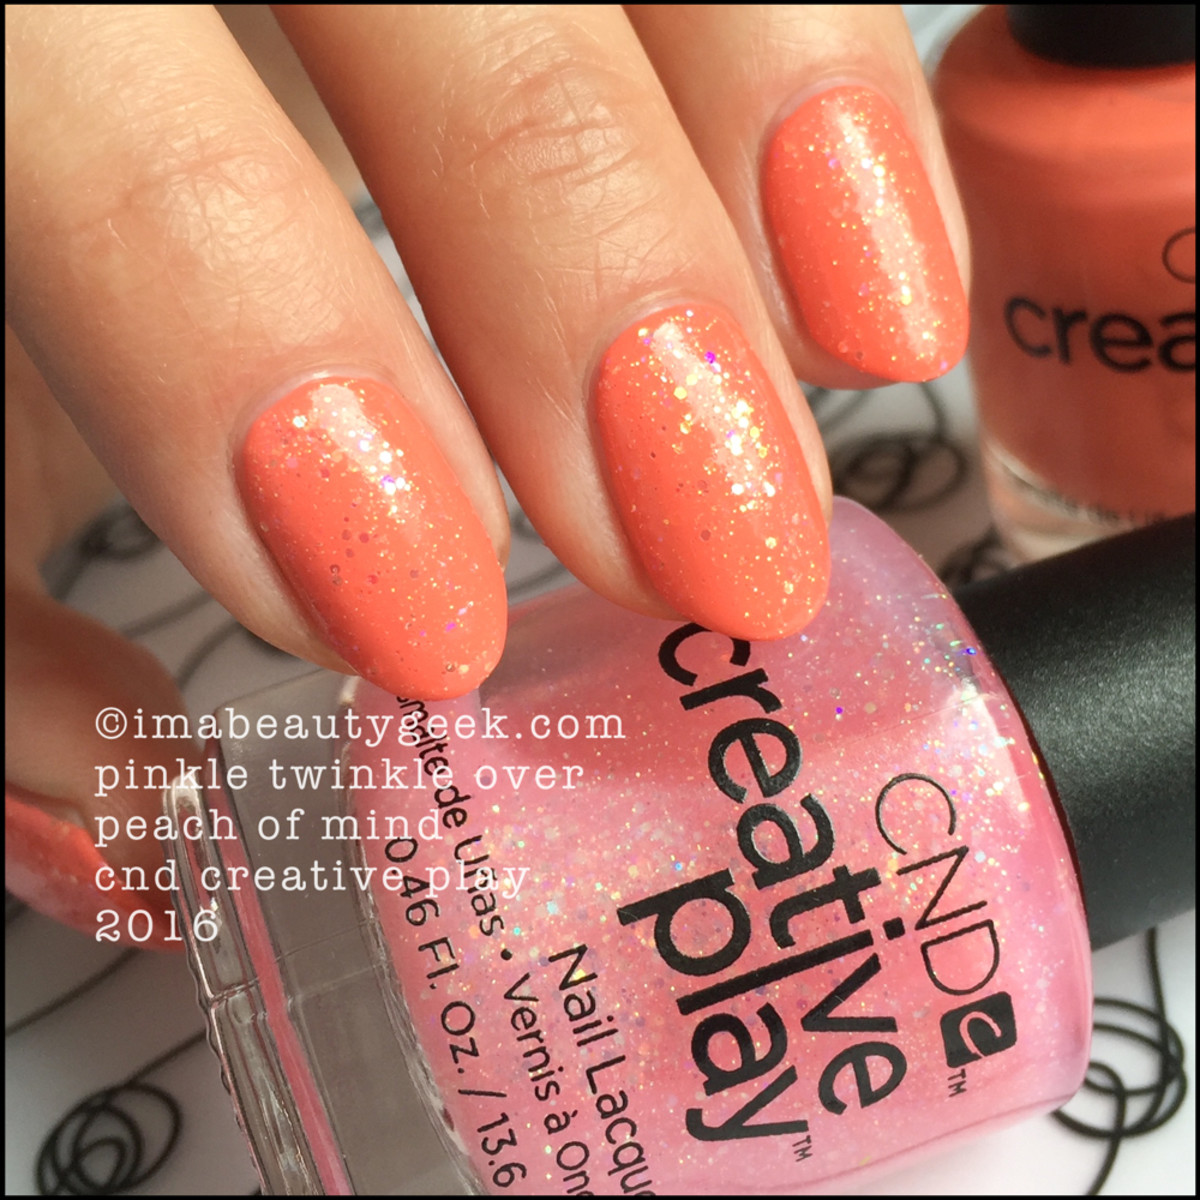 CND Creative Play Pinkle Twinkle over Peach of Mind_CND Creative Play Nail Polish Swatches